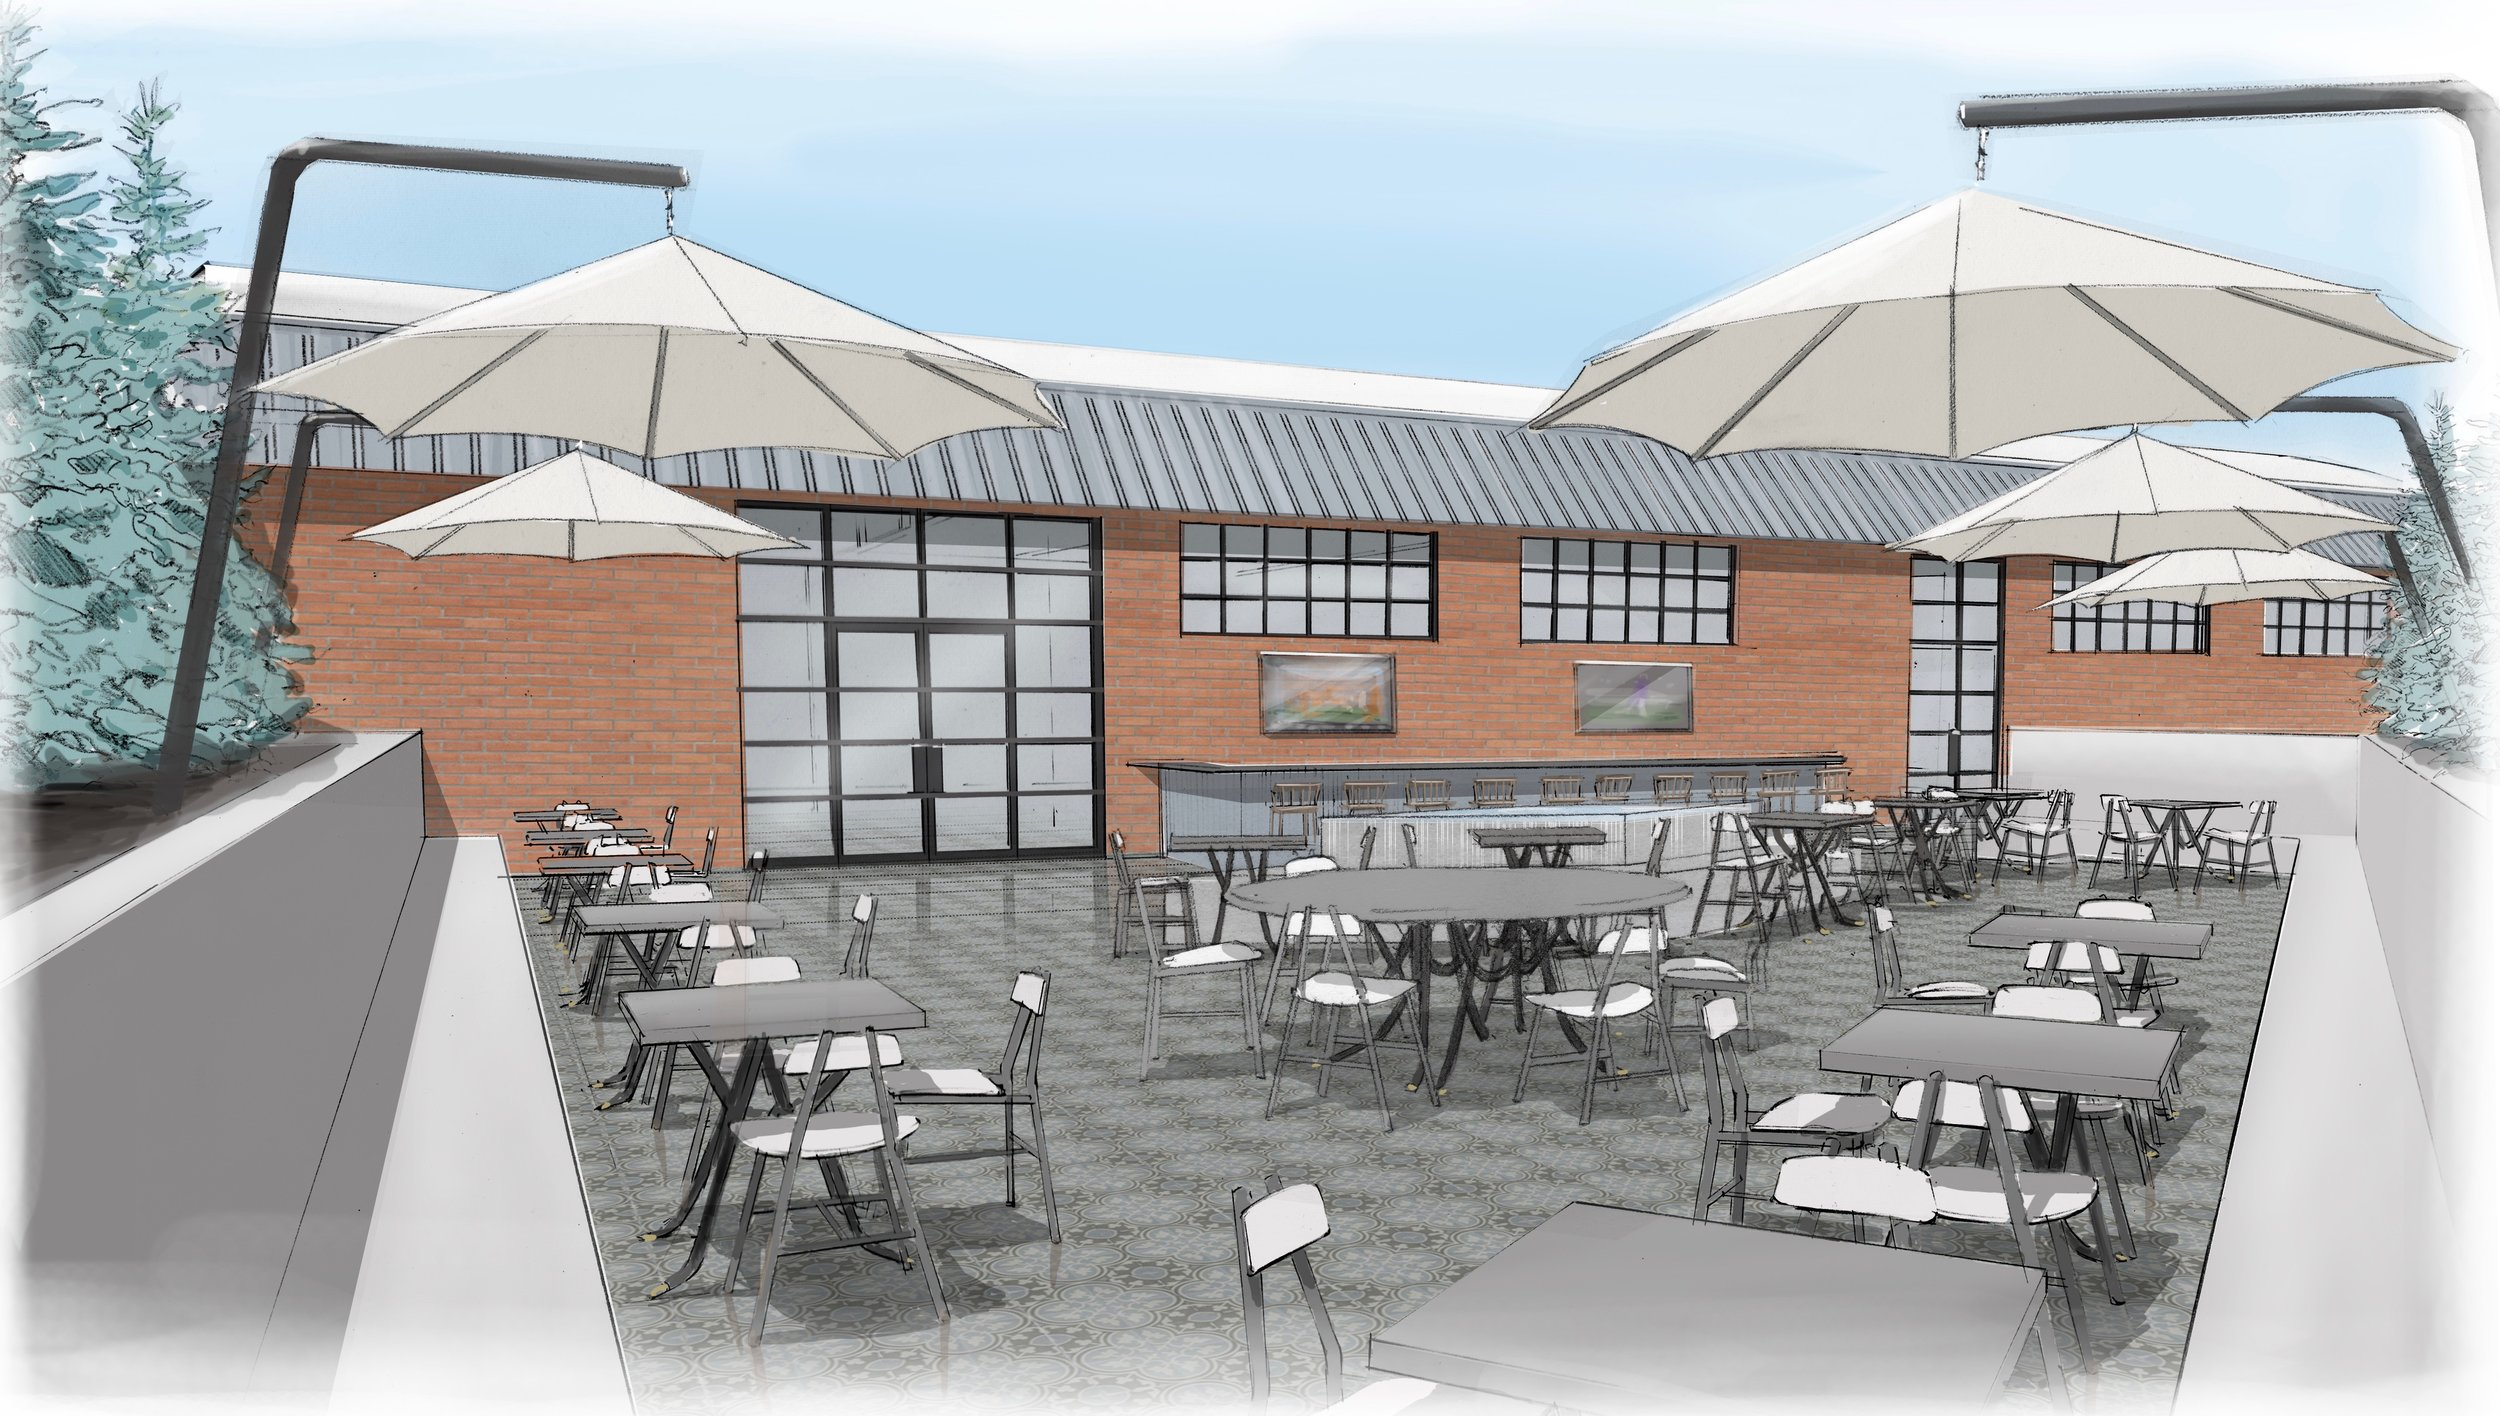 5th and Taylor Patio Drawing 2.jpg